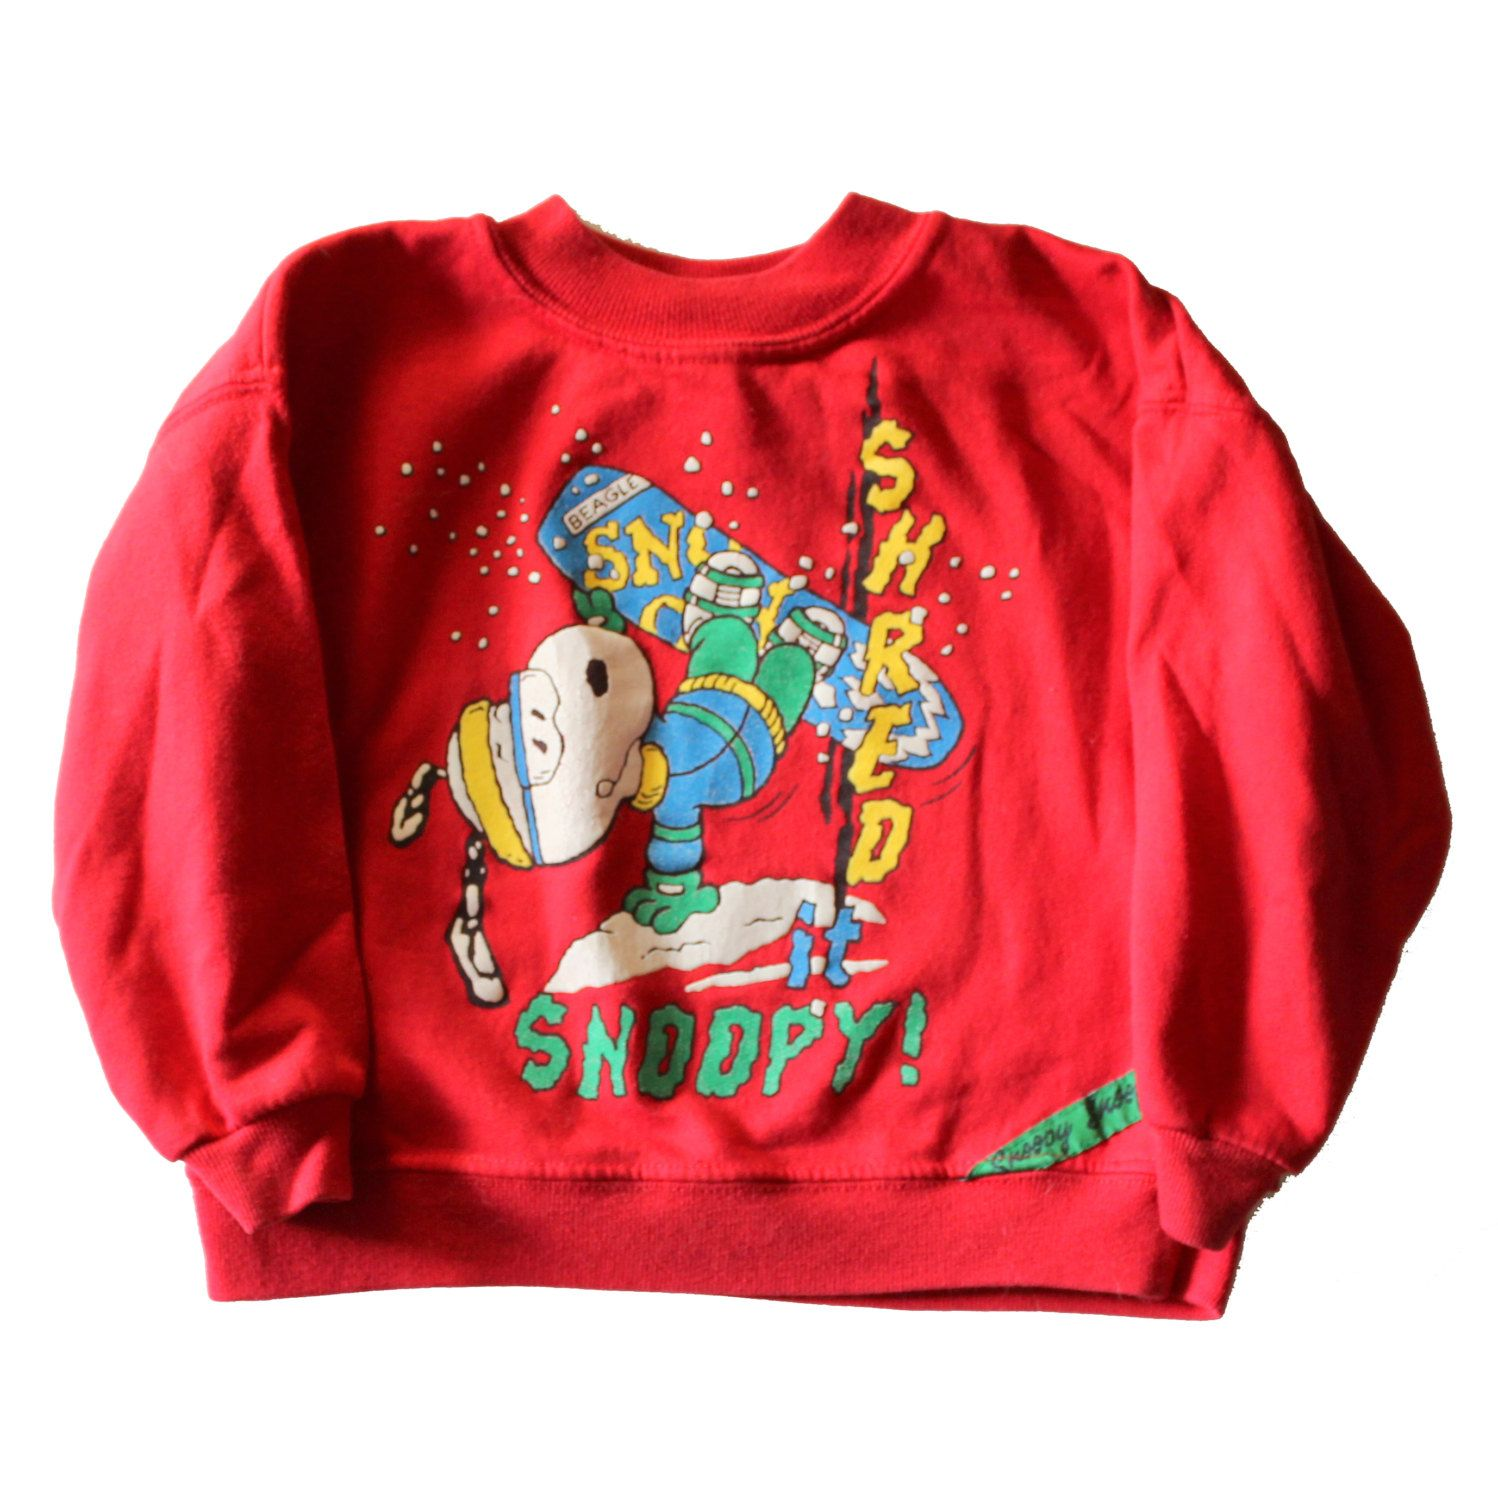 vintage 80s shred it snoopy snowboard peanuts christmas sweater made in